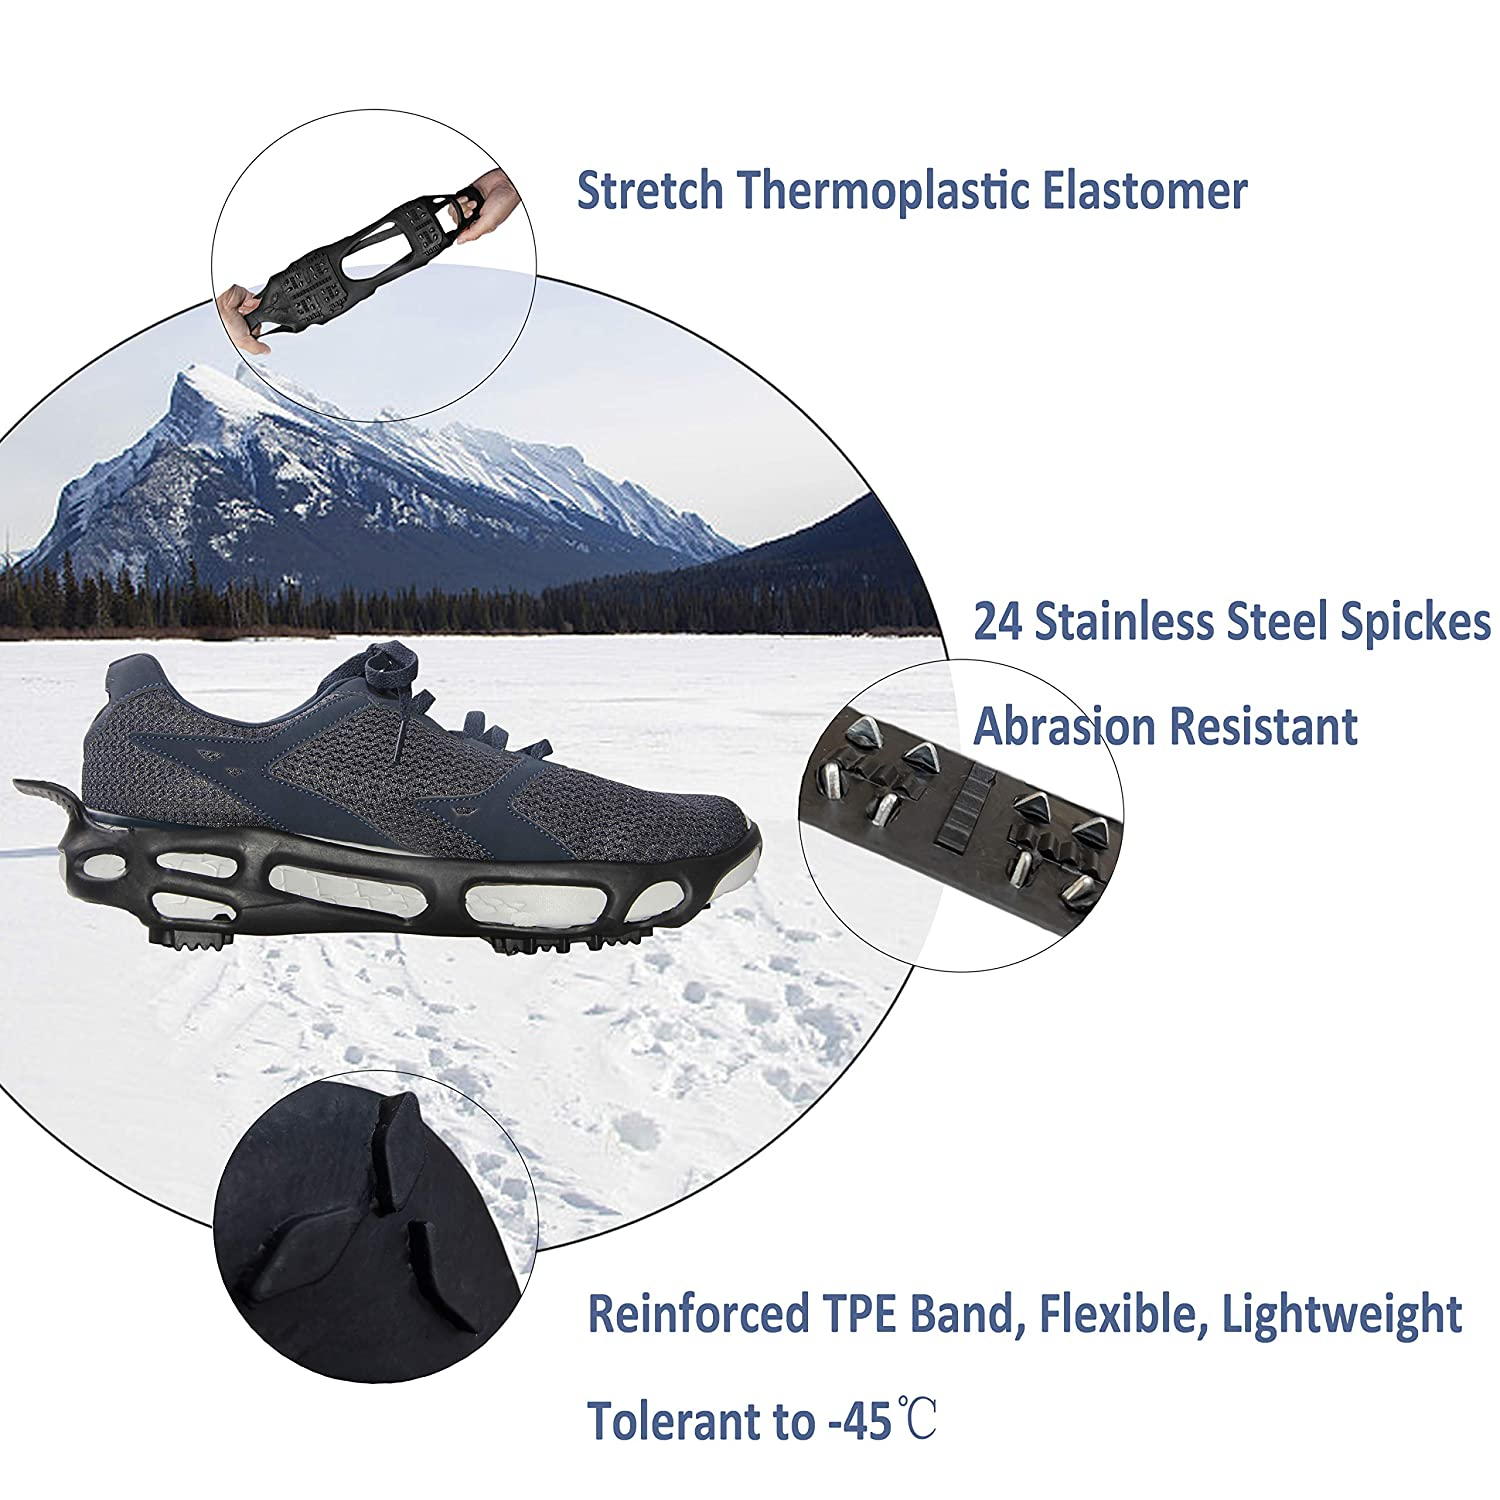 Ice Snow Grips Anti Slip Winter Ice Traction Cleats with Two Secure Straps,10 Stainless Steel Spikes Good anti-slip properties for Walking,Climbing Etc Other Outdoor Activities